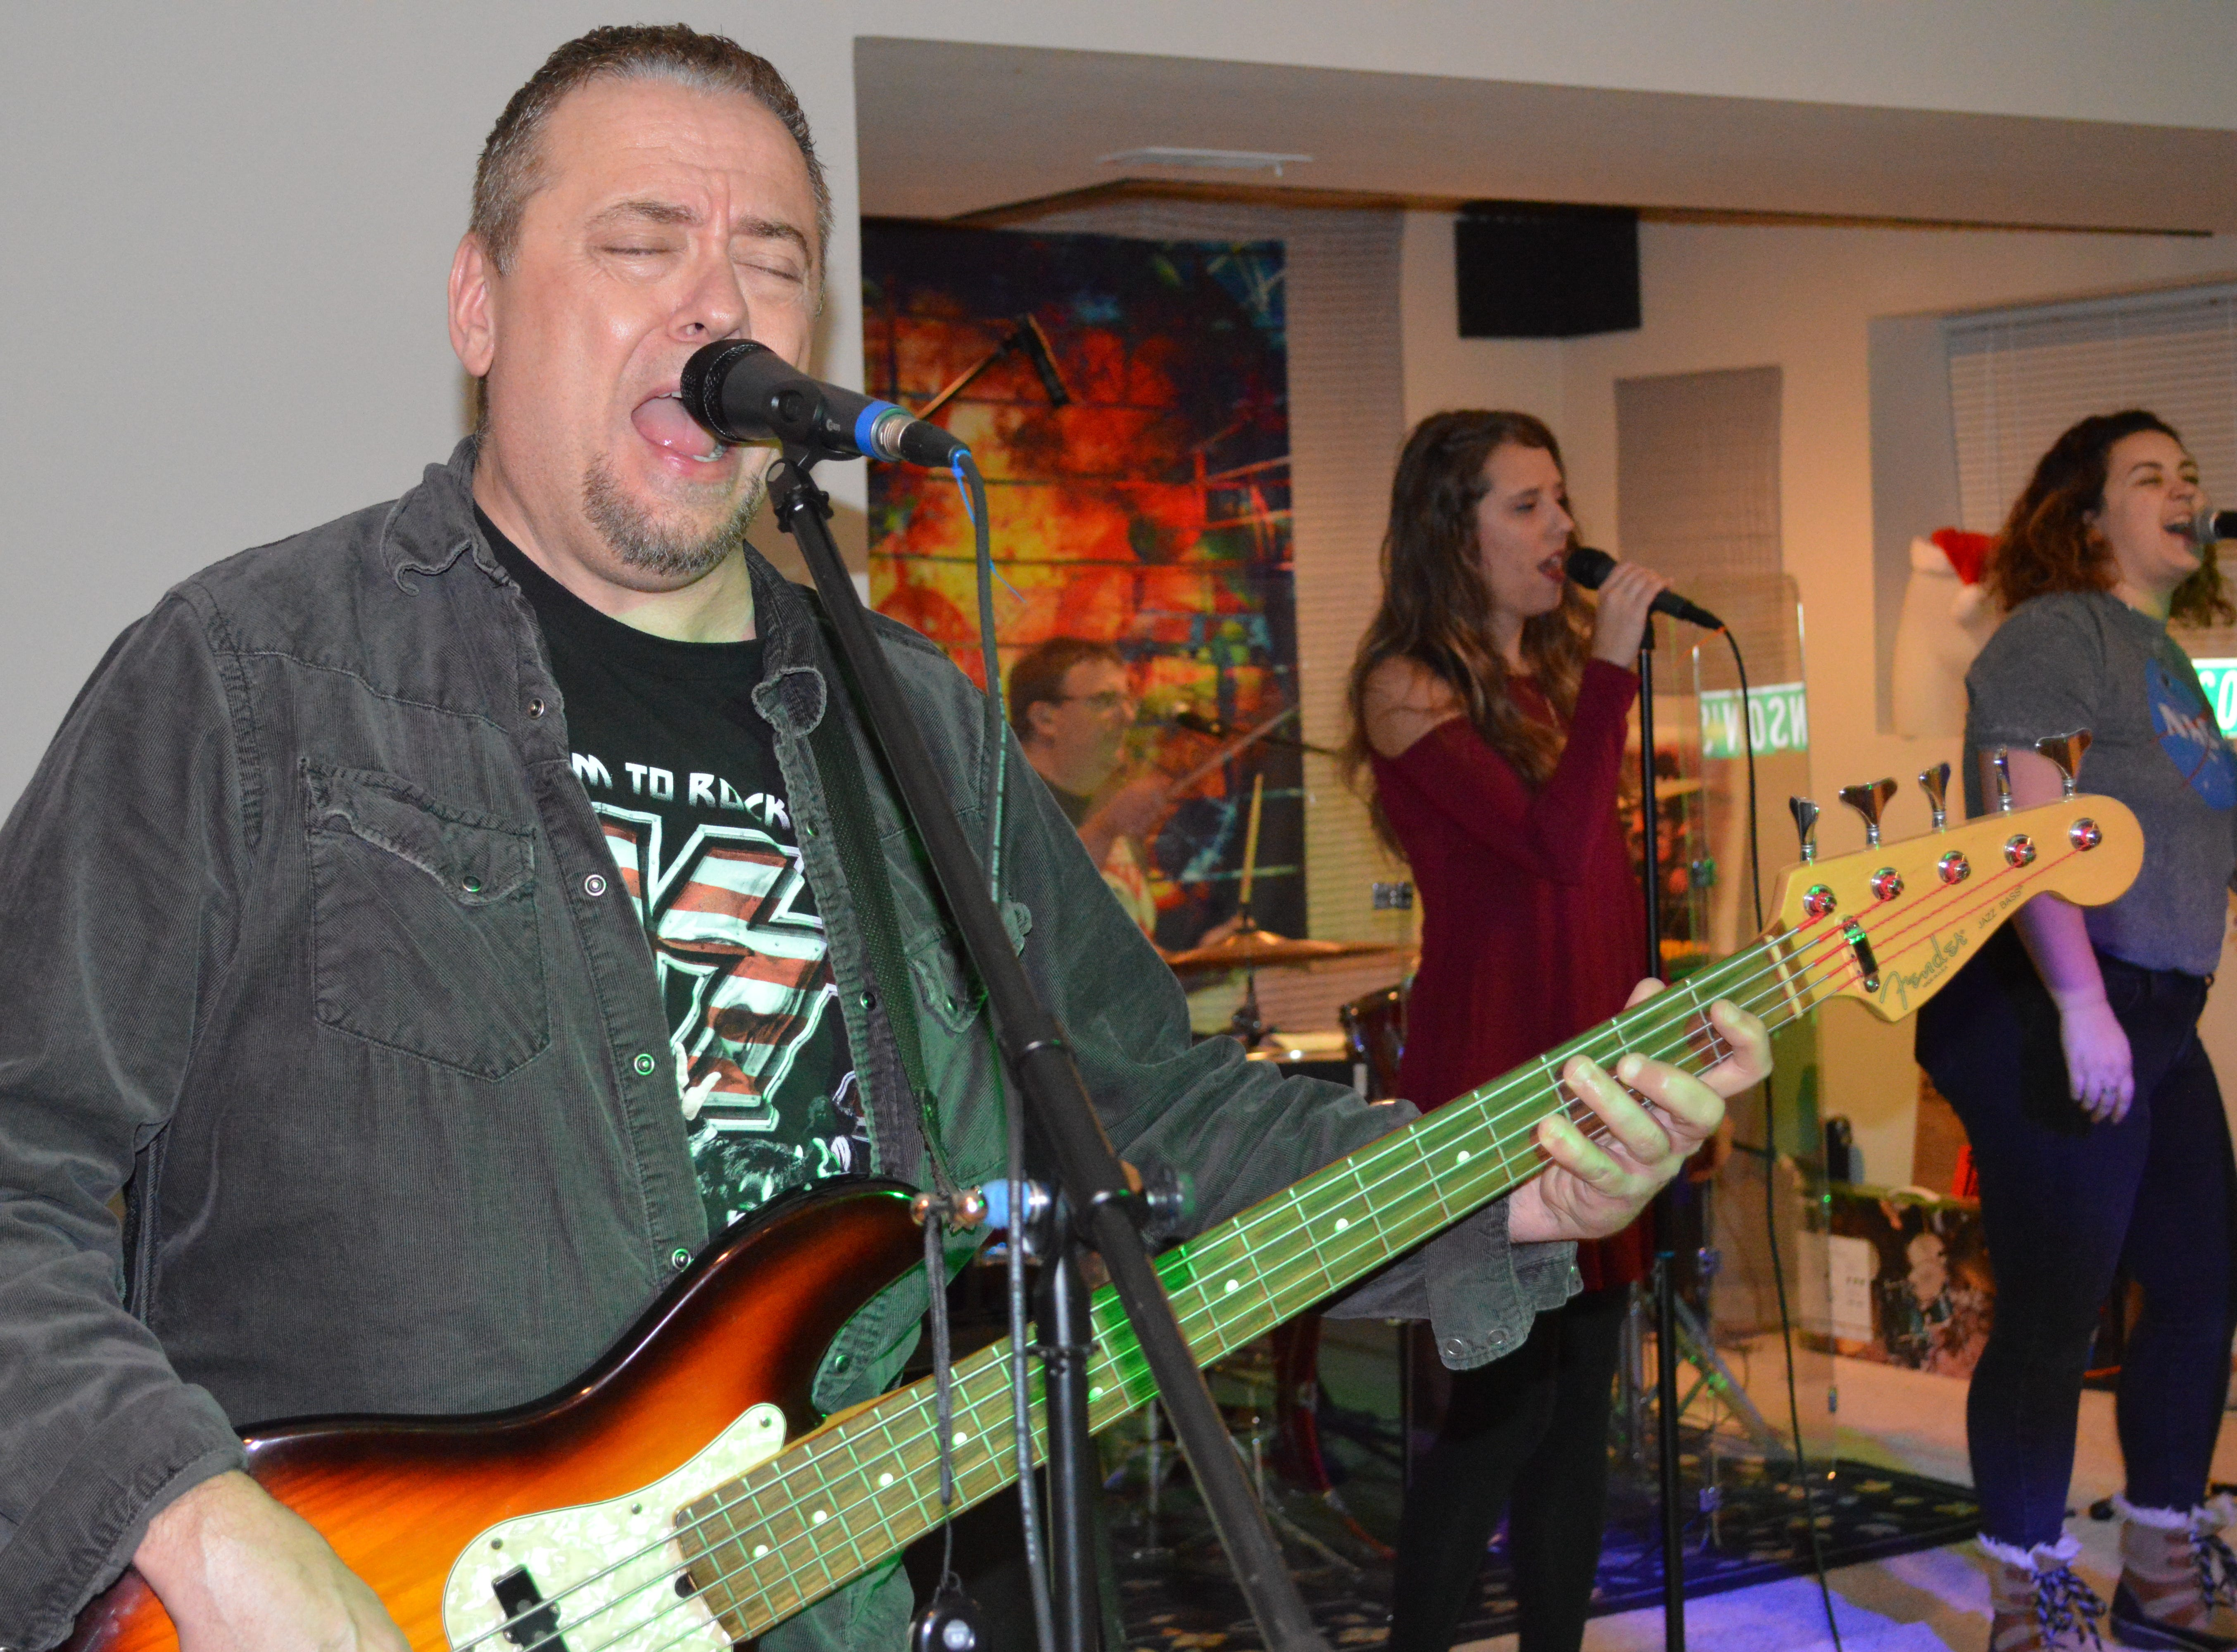 To keep live music alive, there needed to be a band catered to the21 to 31-year-olds going out to the bars, said Jeff Jost, bass player and manager of Smart Mouth.